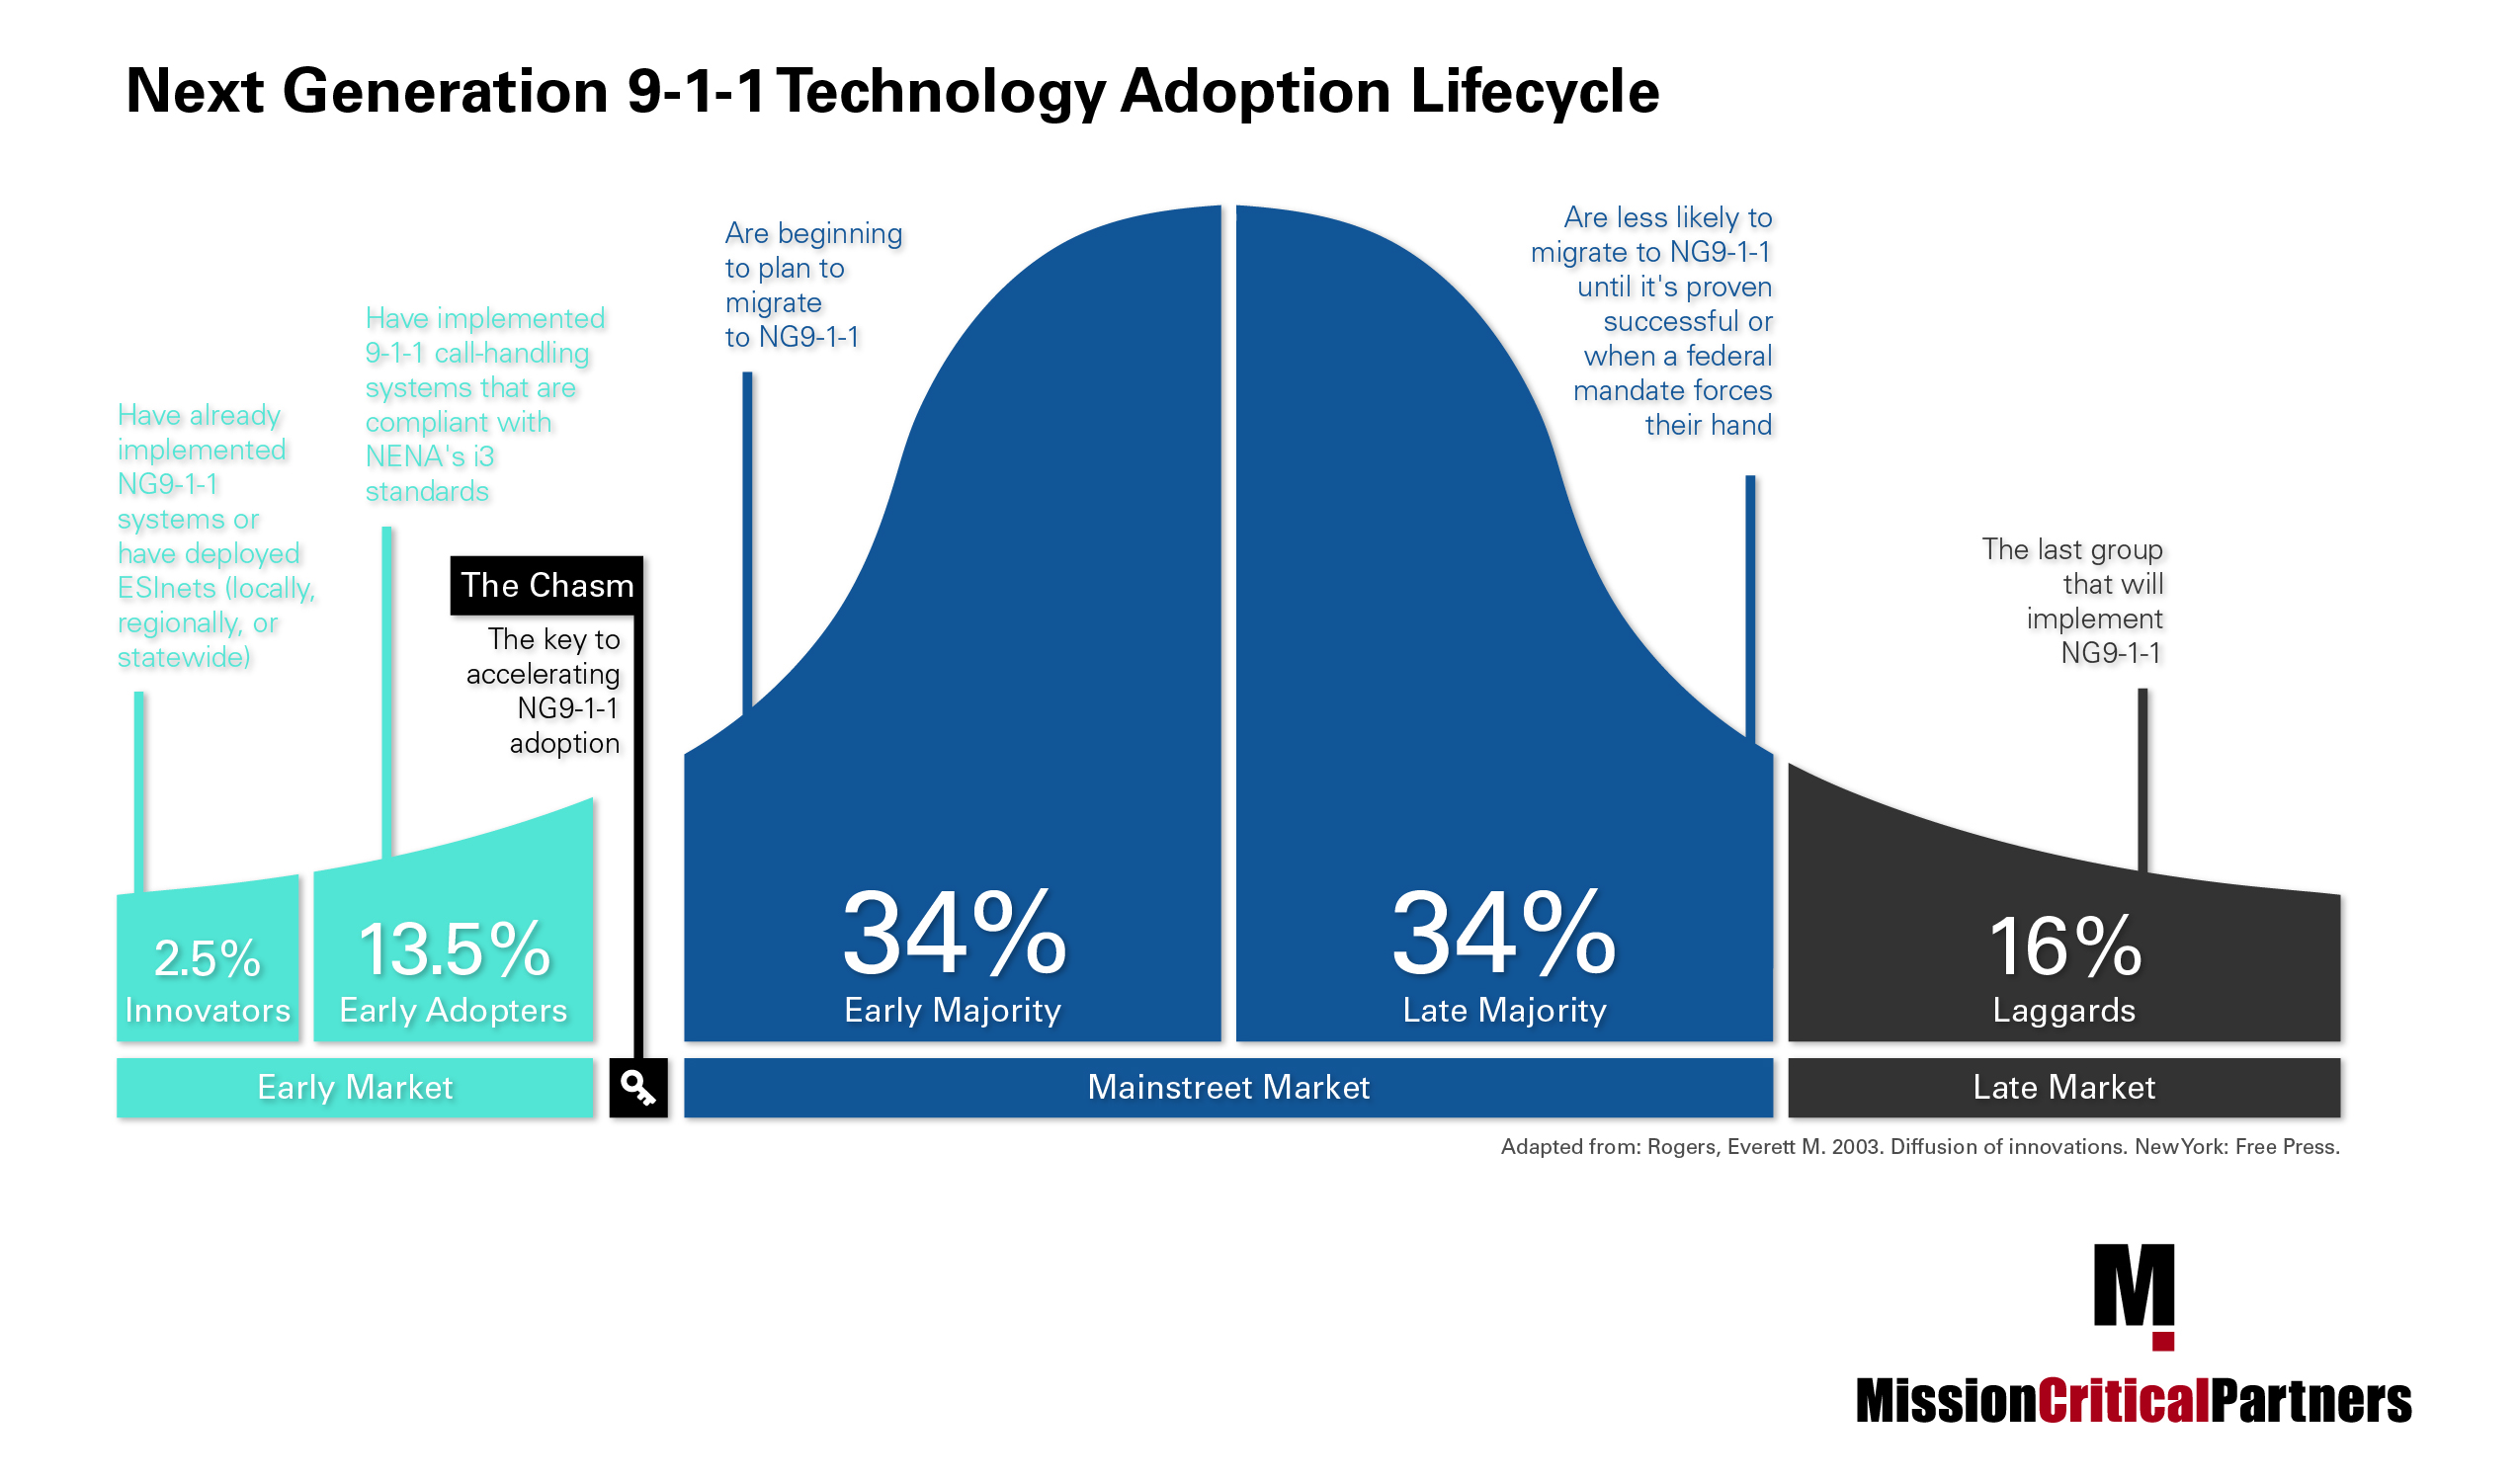 Next Generation 911 Tech Adoption Lifecycle